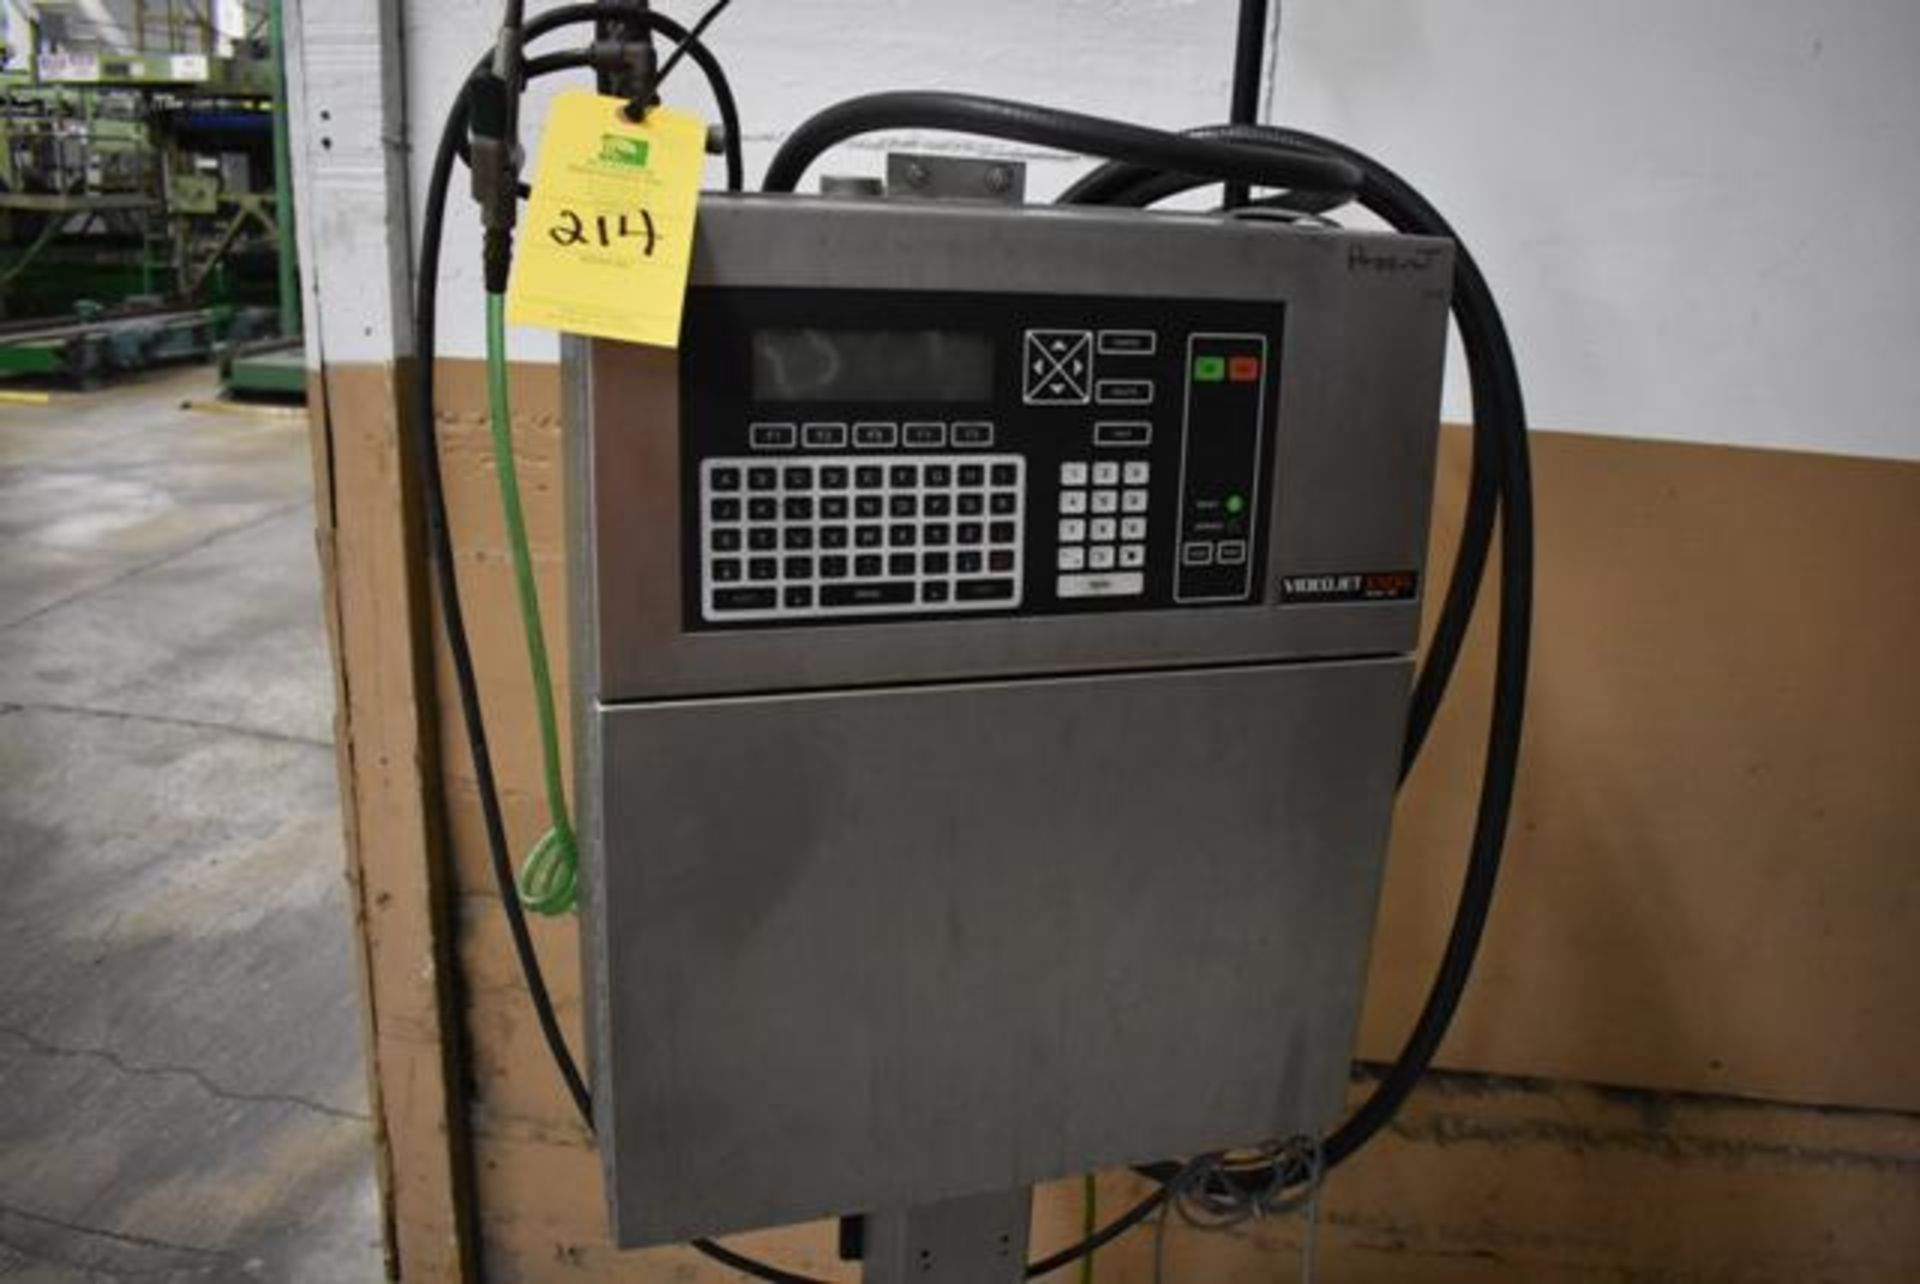 Lot 214 - VideoJet Excel Series 100 Includes SS Stand, Loading Fee: $50